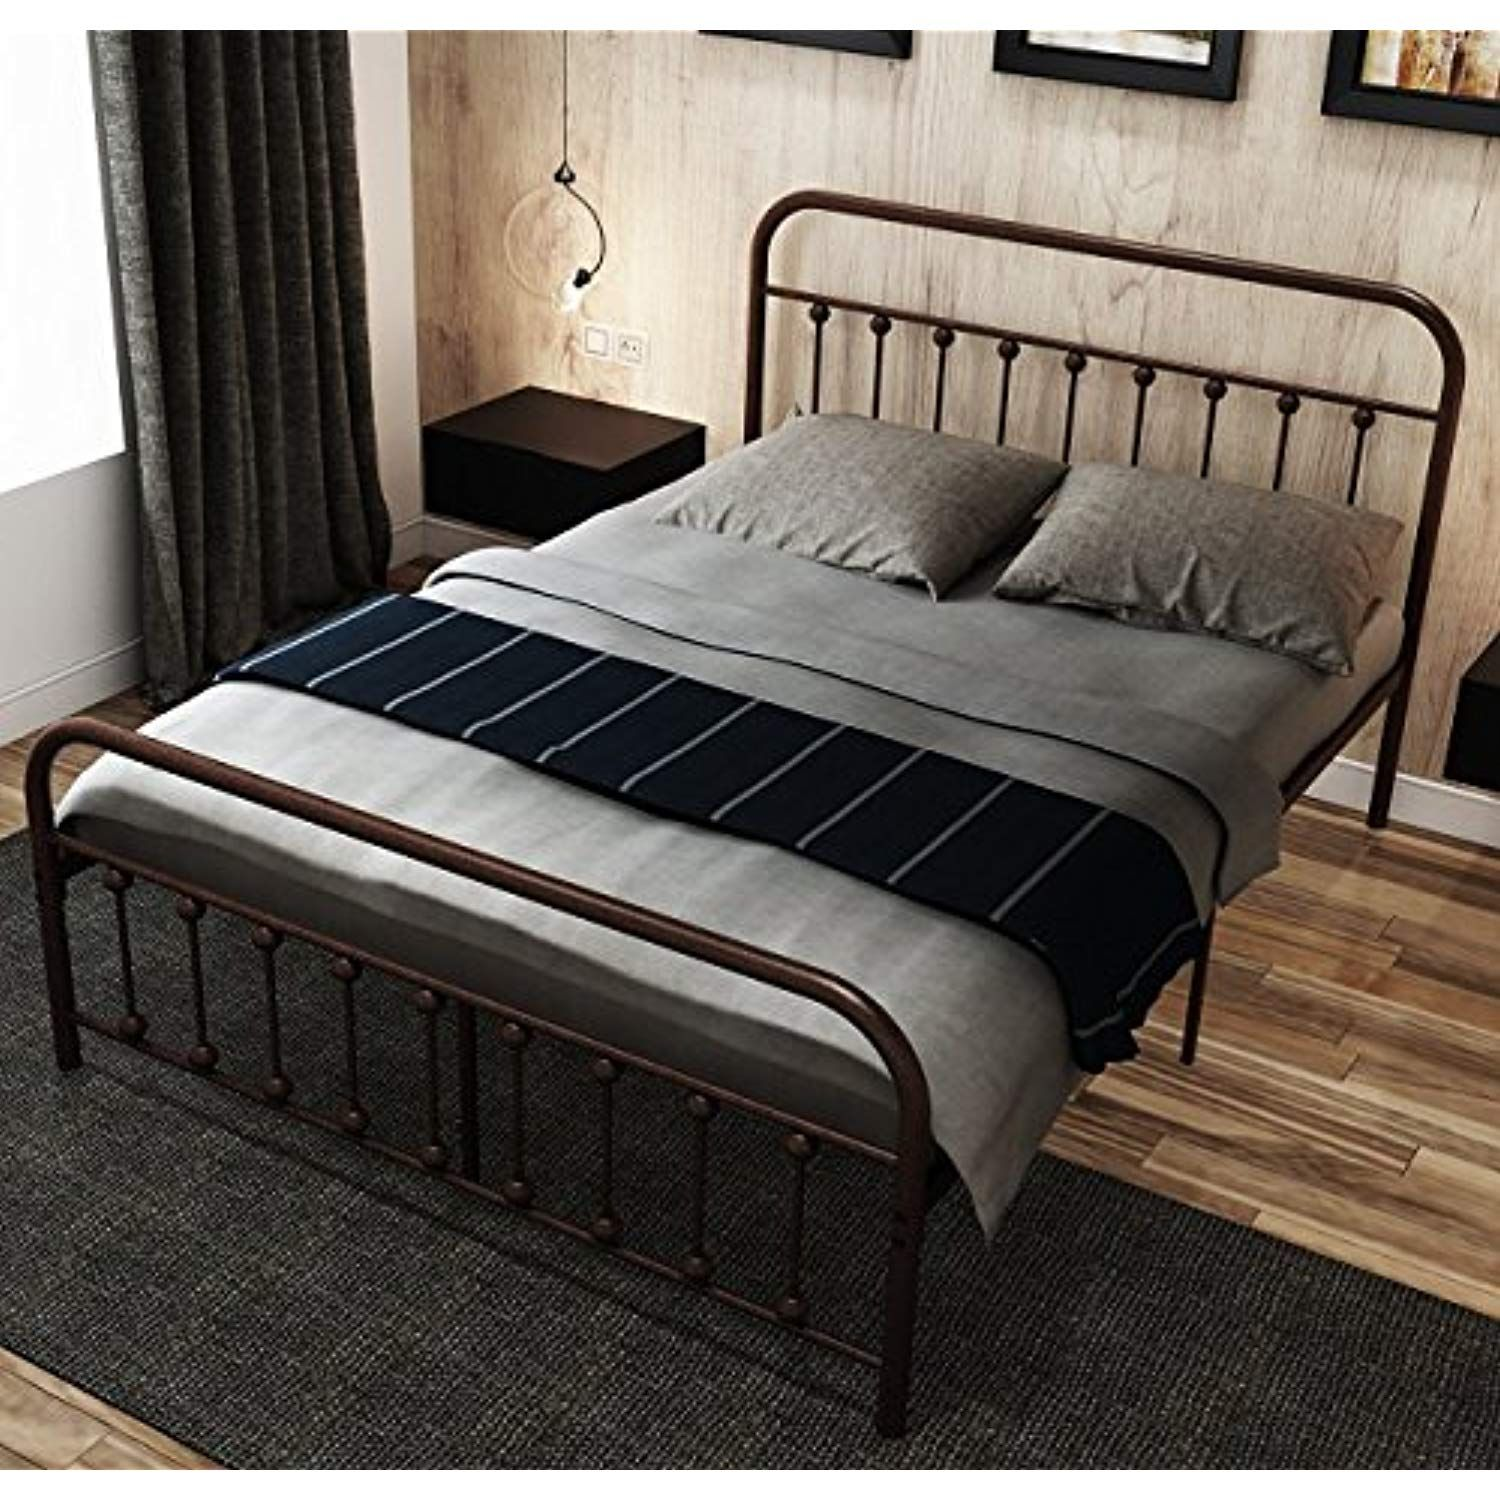 Metal Bed Frame Queen The Simple Style Iron Art Double Bed Has The Metal Structure Metal Tube And Antique Brown Bed Frame Metal Bed Frame Metal Bed Frame Queen